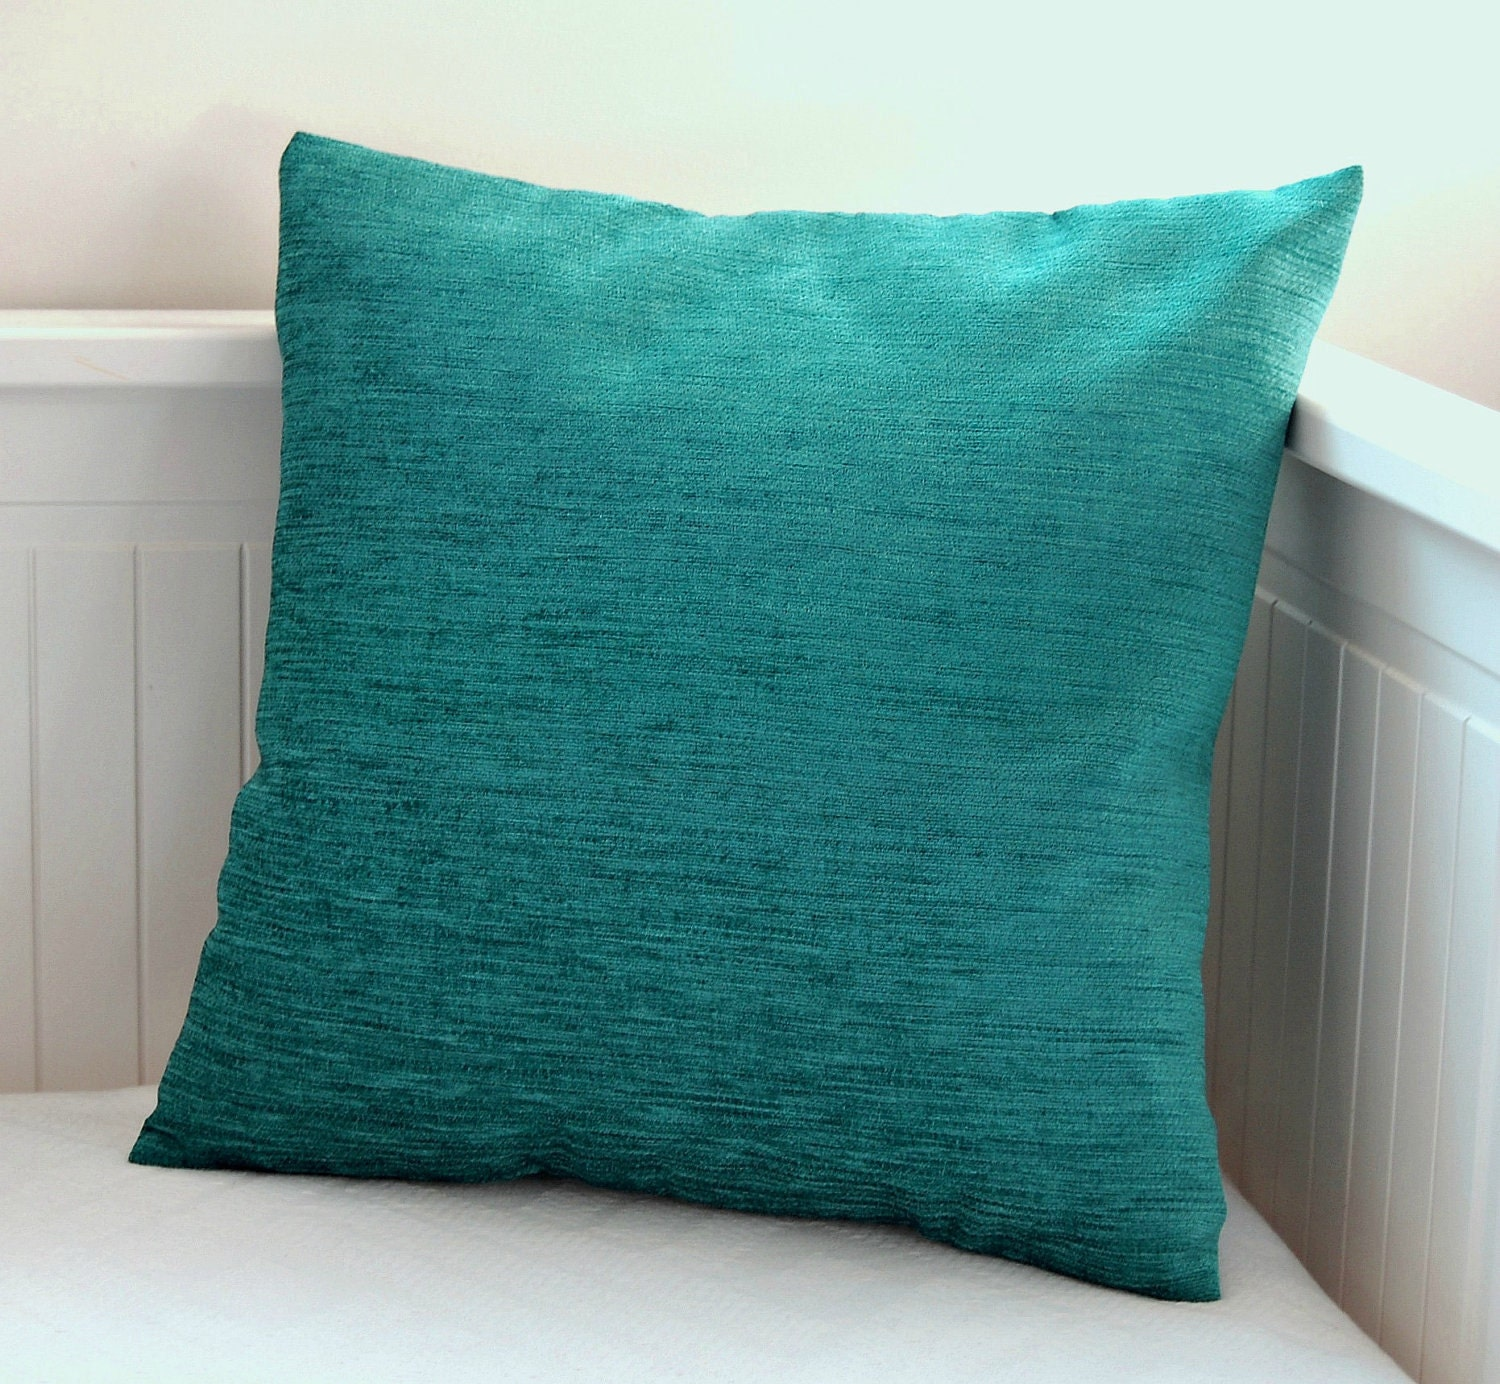 Throw Pillow Covers Teal : Teal Home Decor DECORATING IDEAS